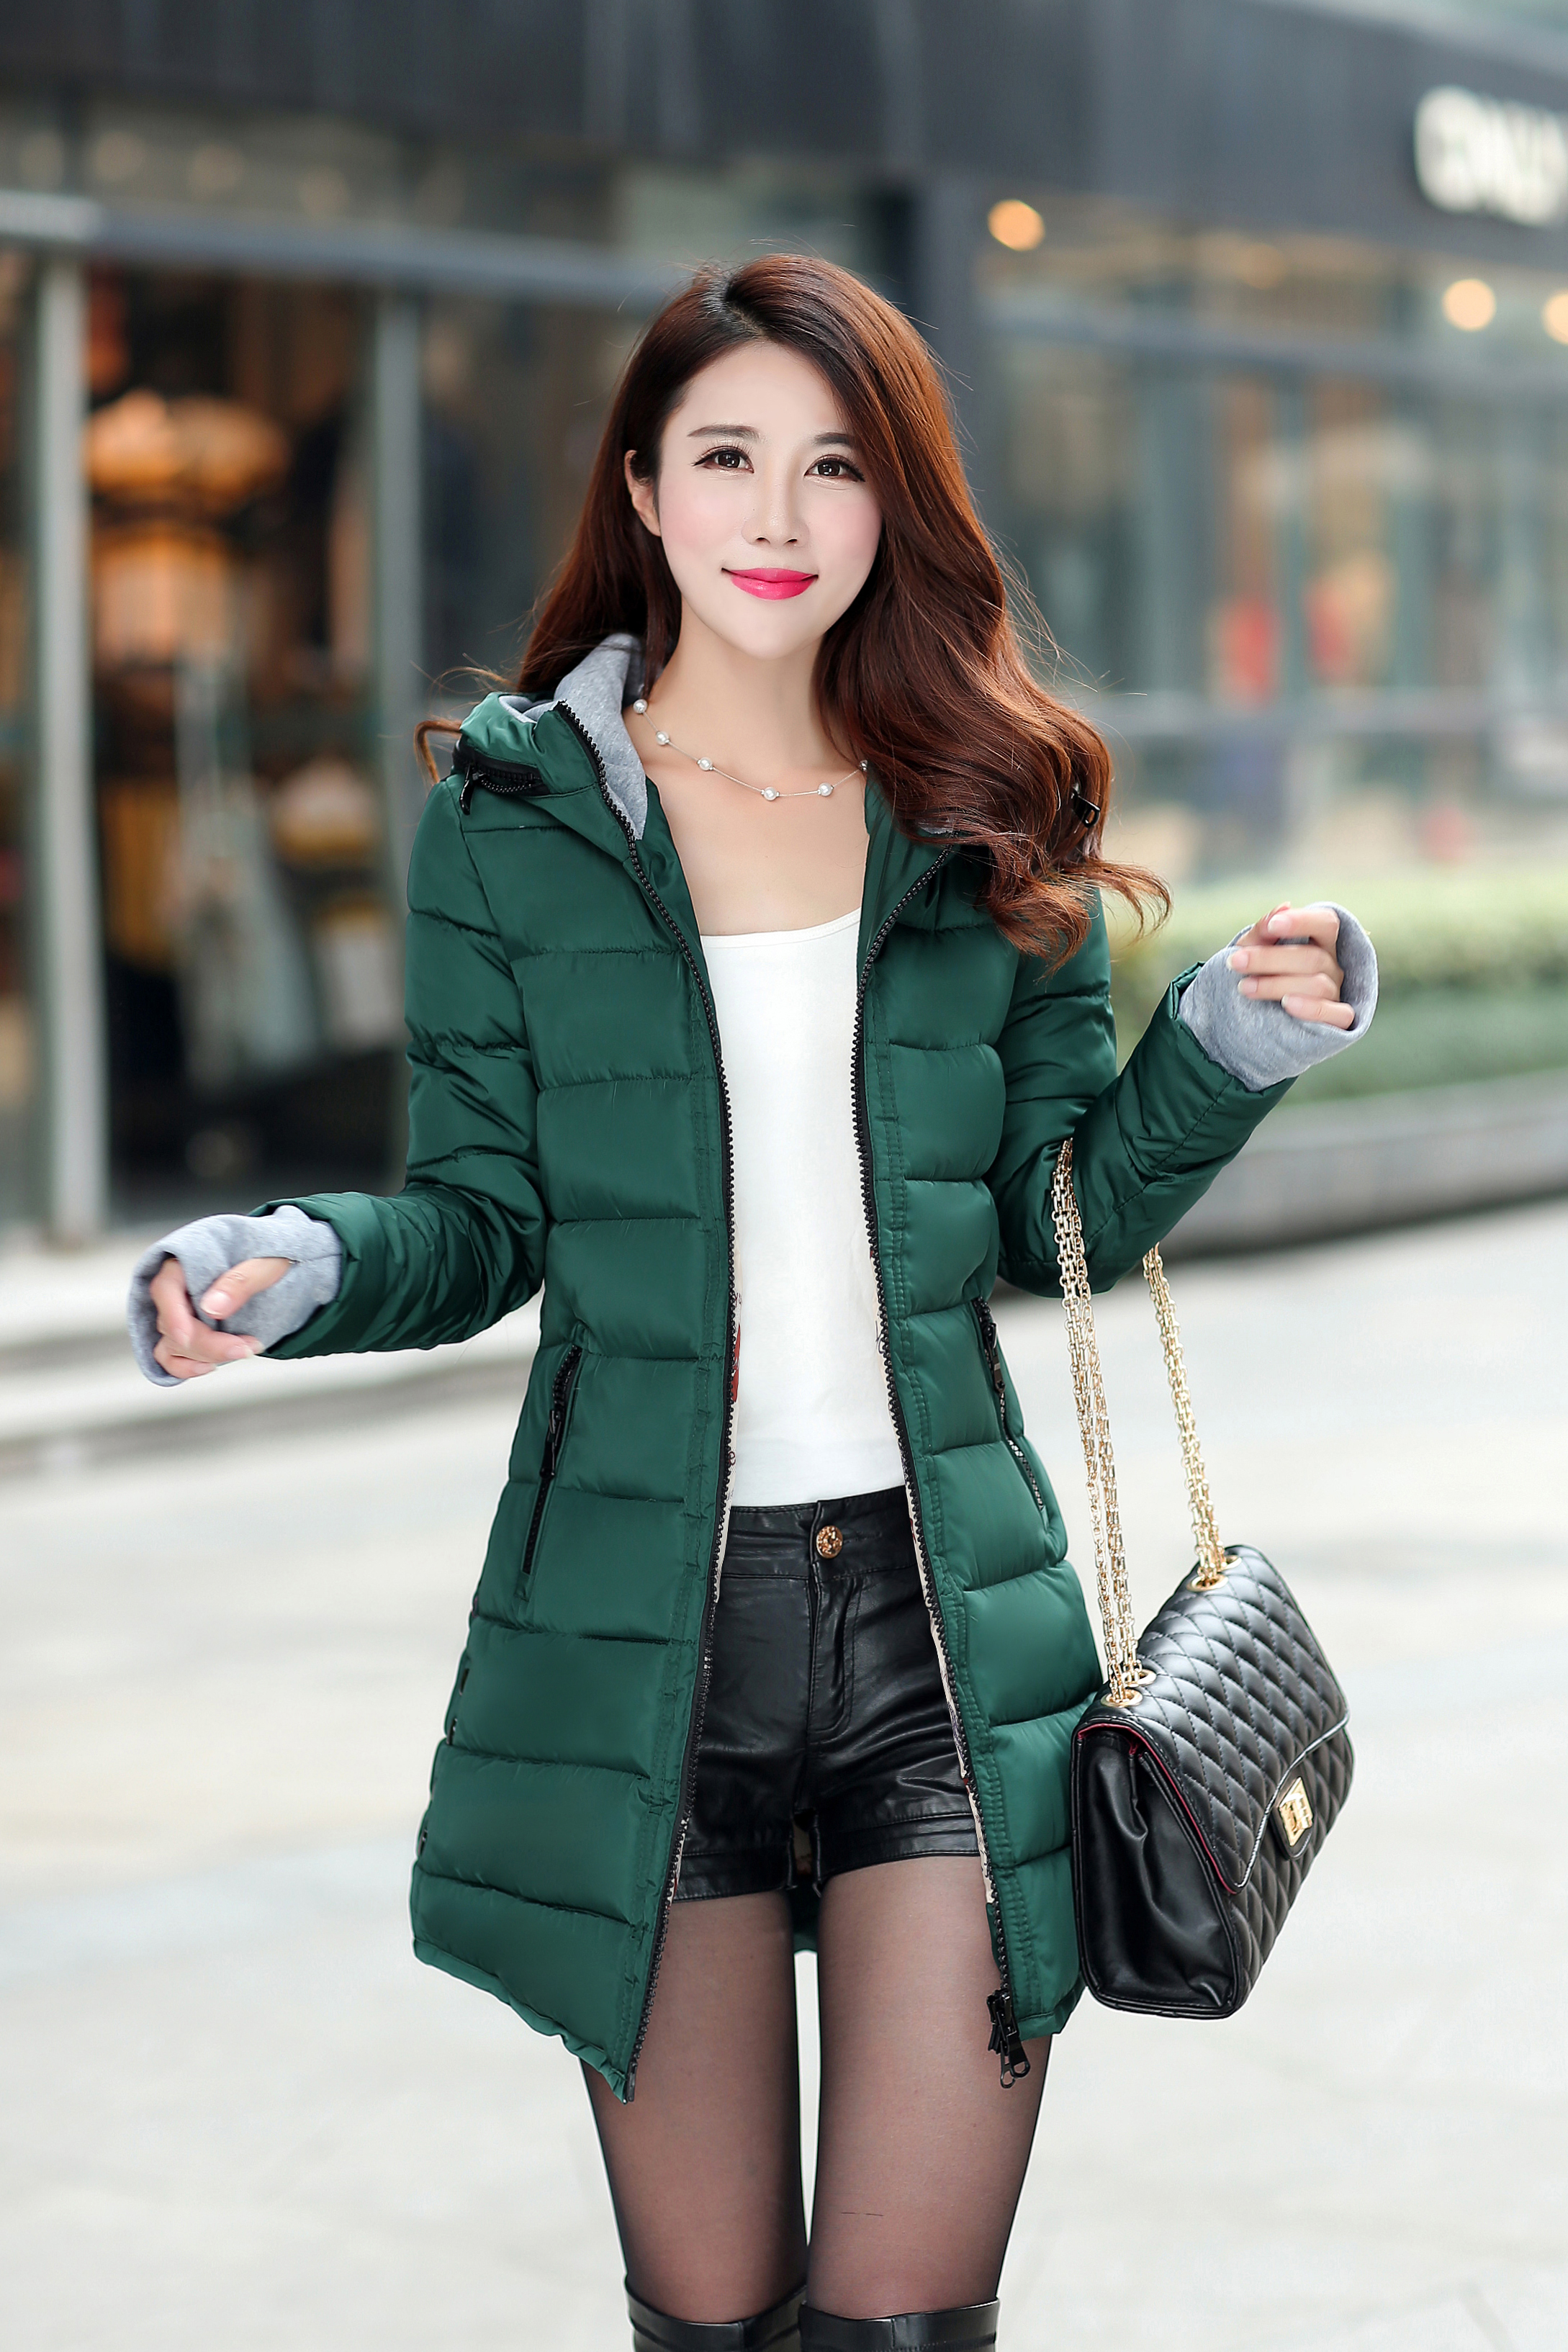 Anbenser Down Jacket Women Long Parka Ultra Light Downjacket Coat Long Plus Size Winte Autumn Warm Jacket Coat Lady Down Jacket